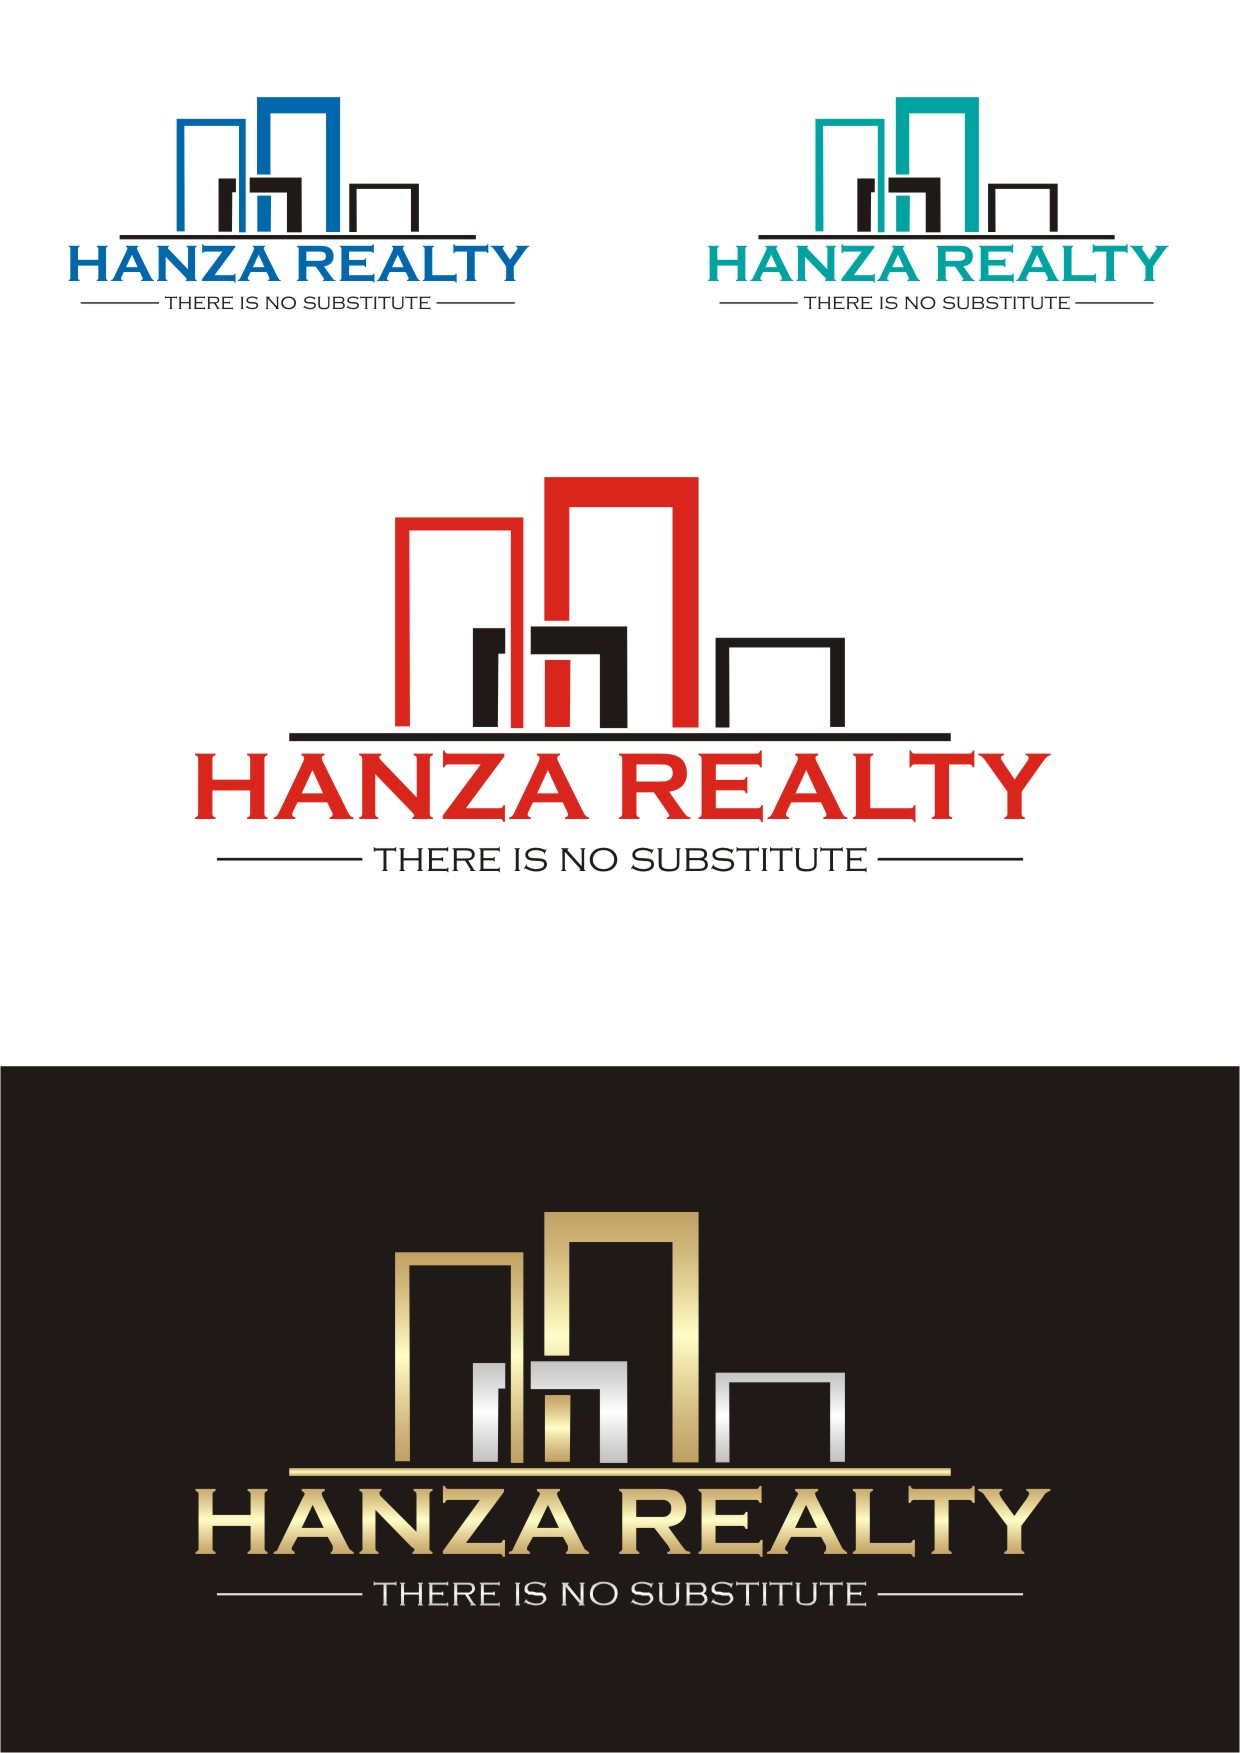 Logo Design by Lynx Graphics - Entry No. 414 in the Logo Design Contest Logo Design for Hanza Realty.